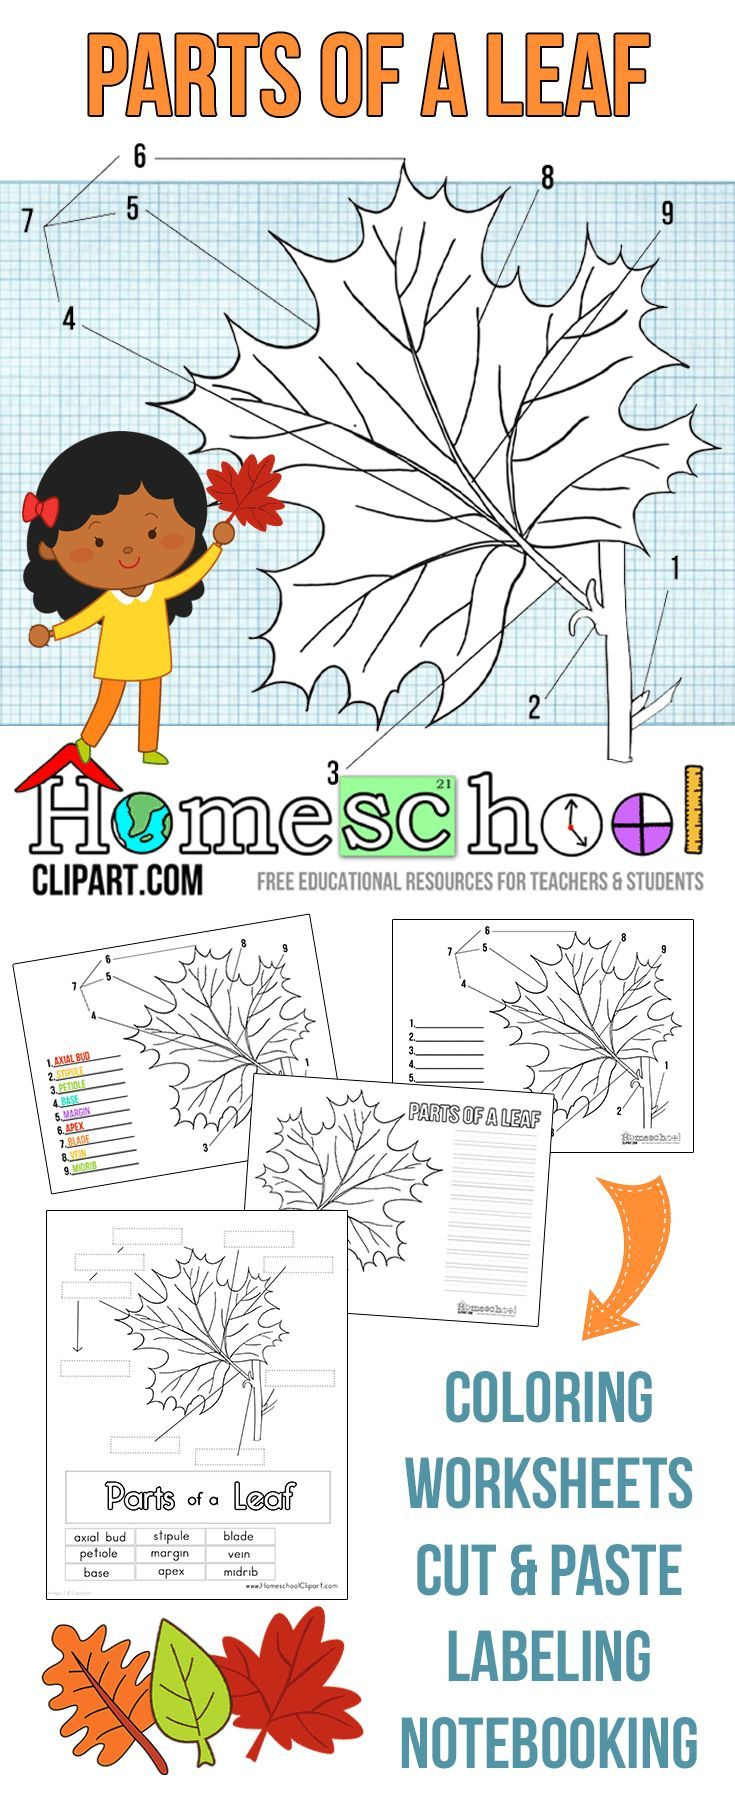 free parts of a leaf science notebook worksheets coloring pages